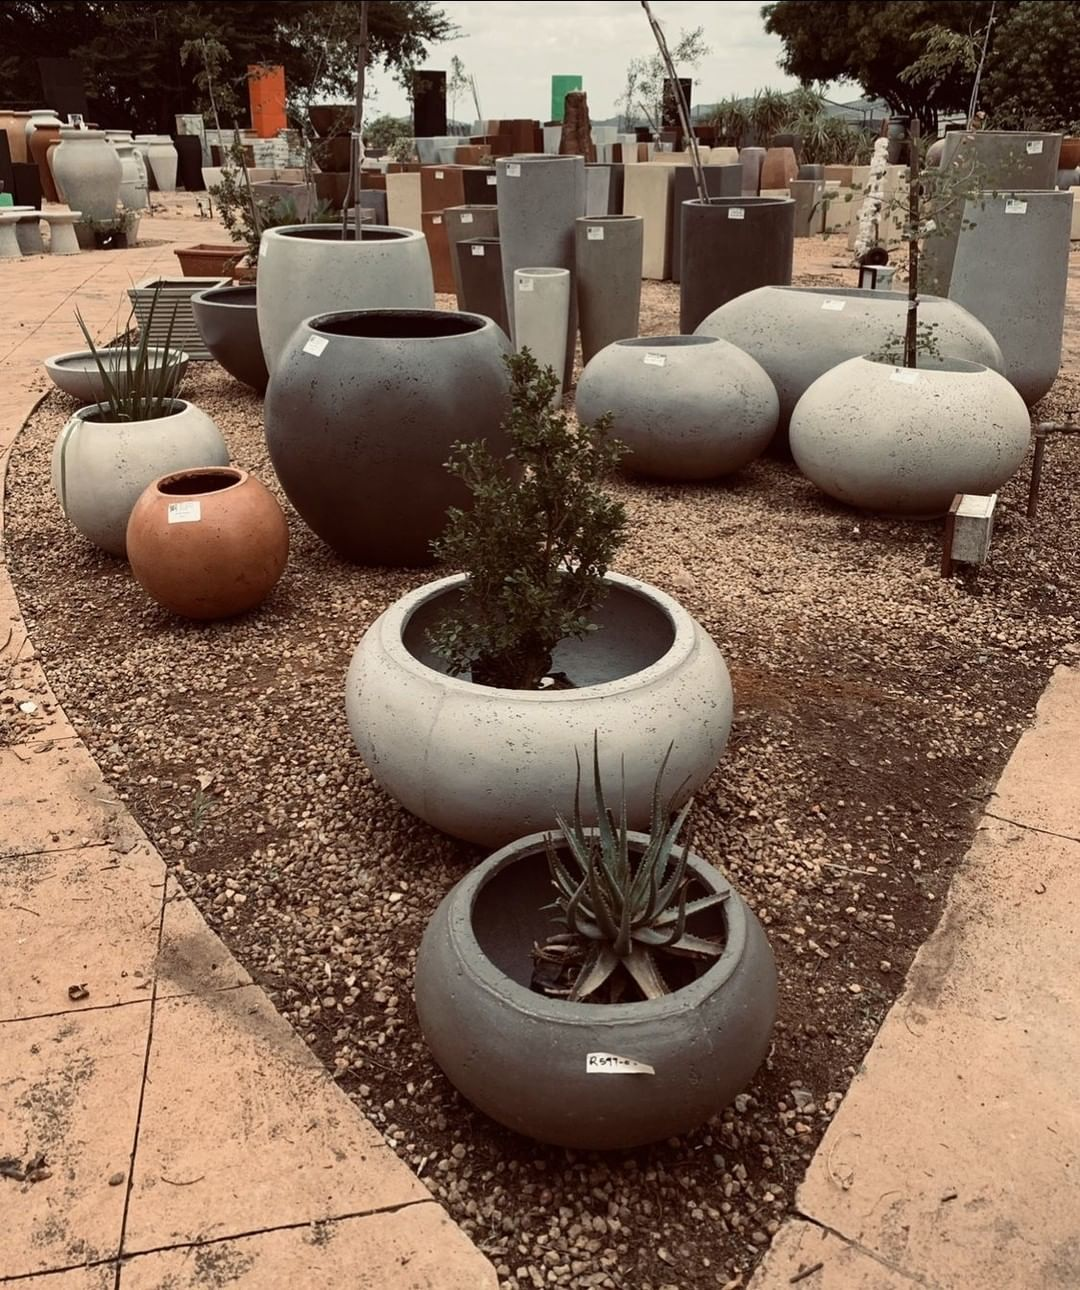 gardencenter#nursery#gardenpots#planters#containerplanting